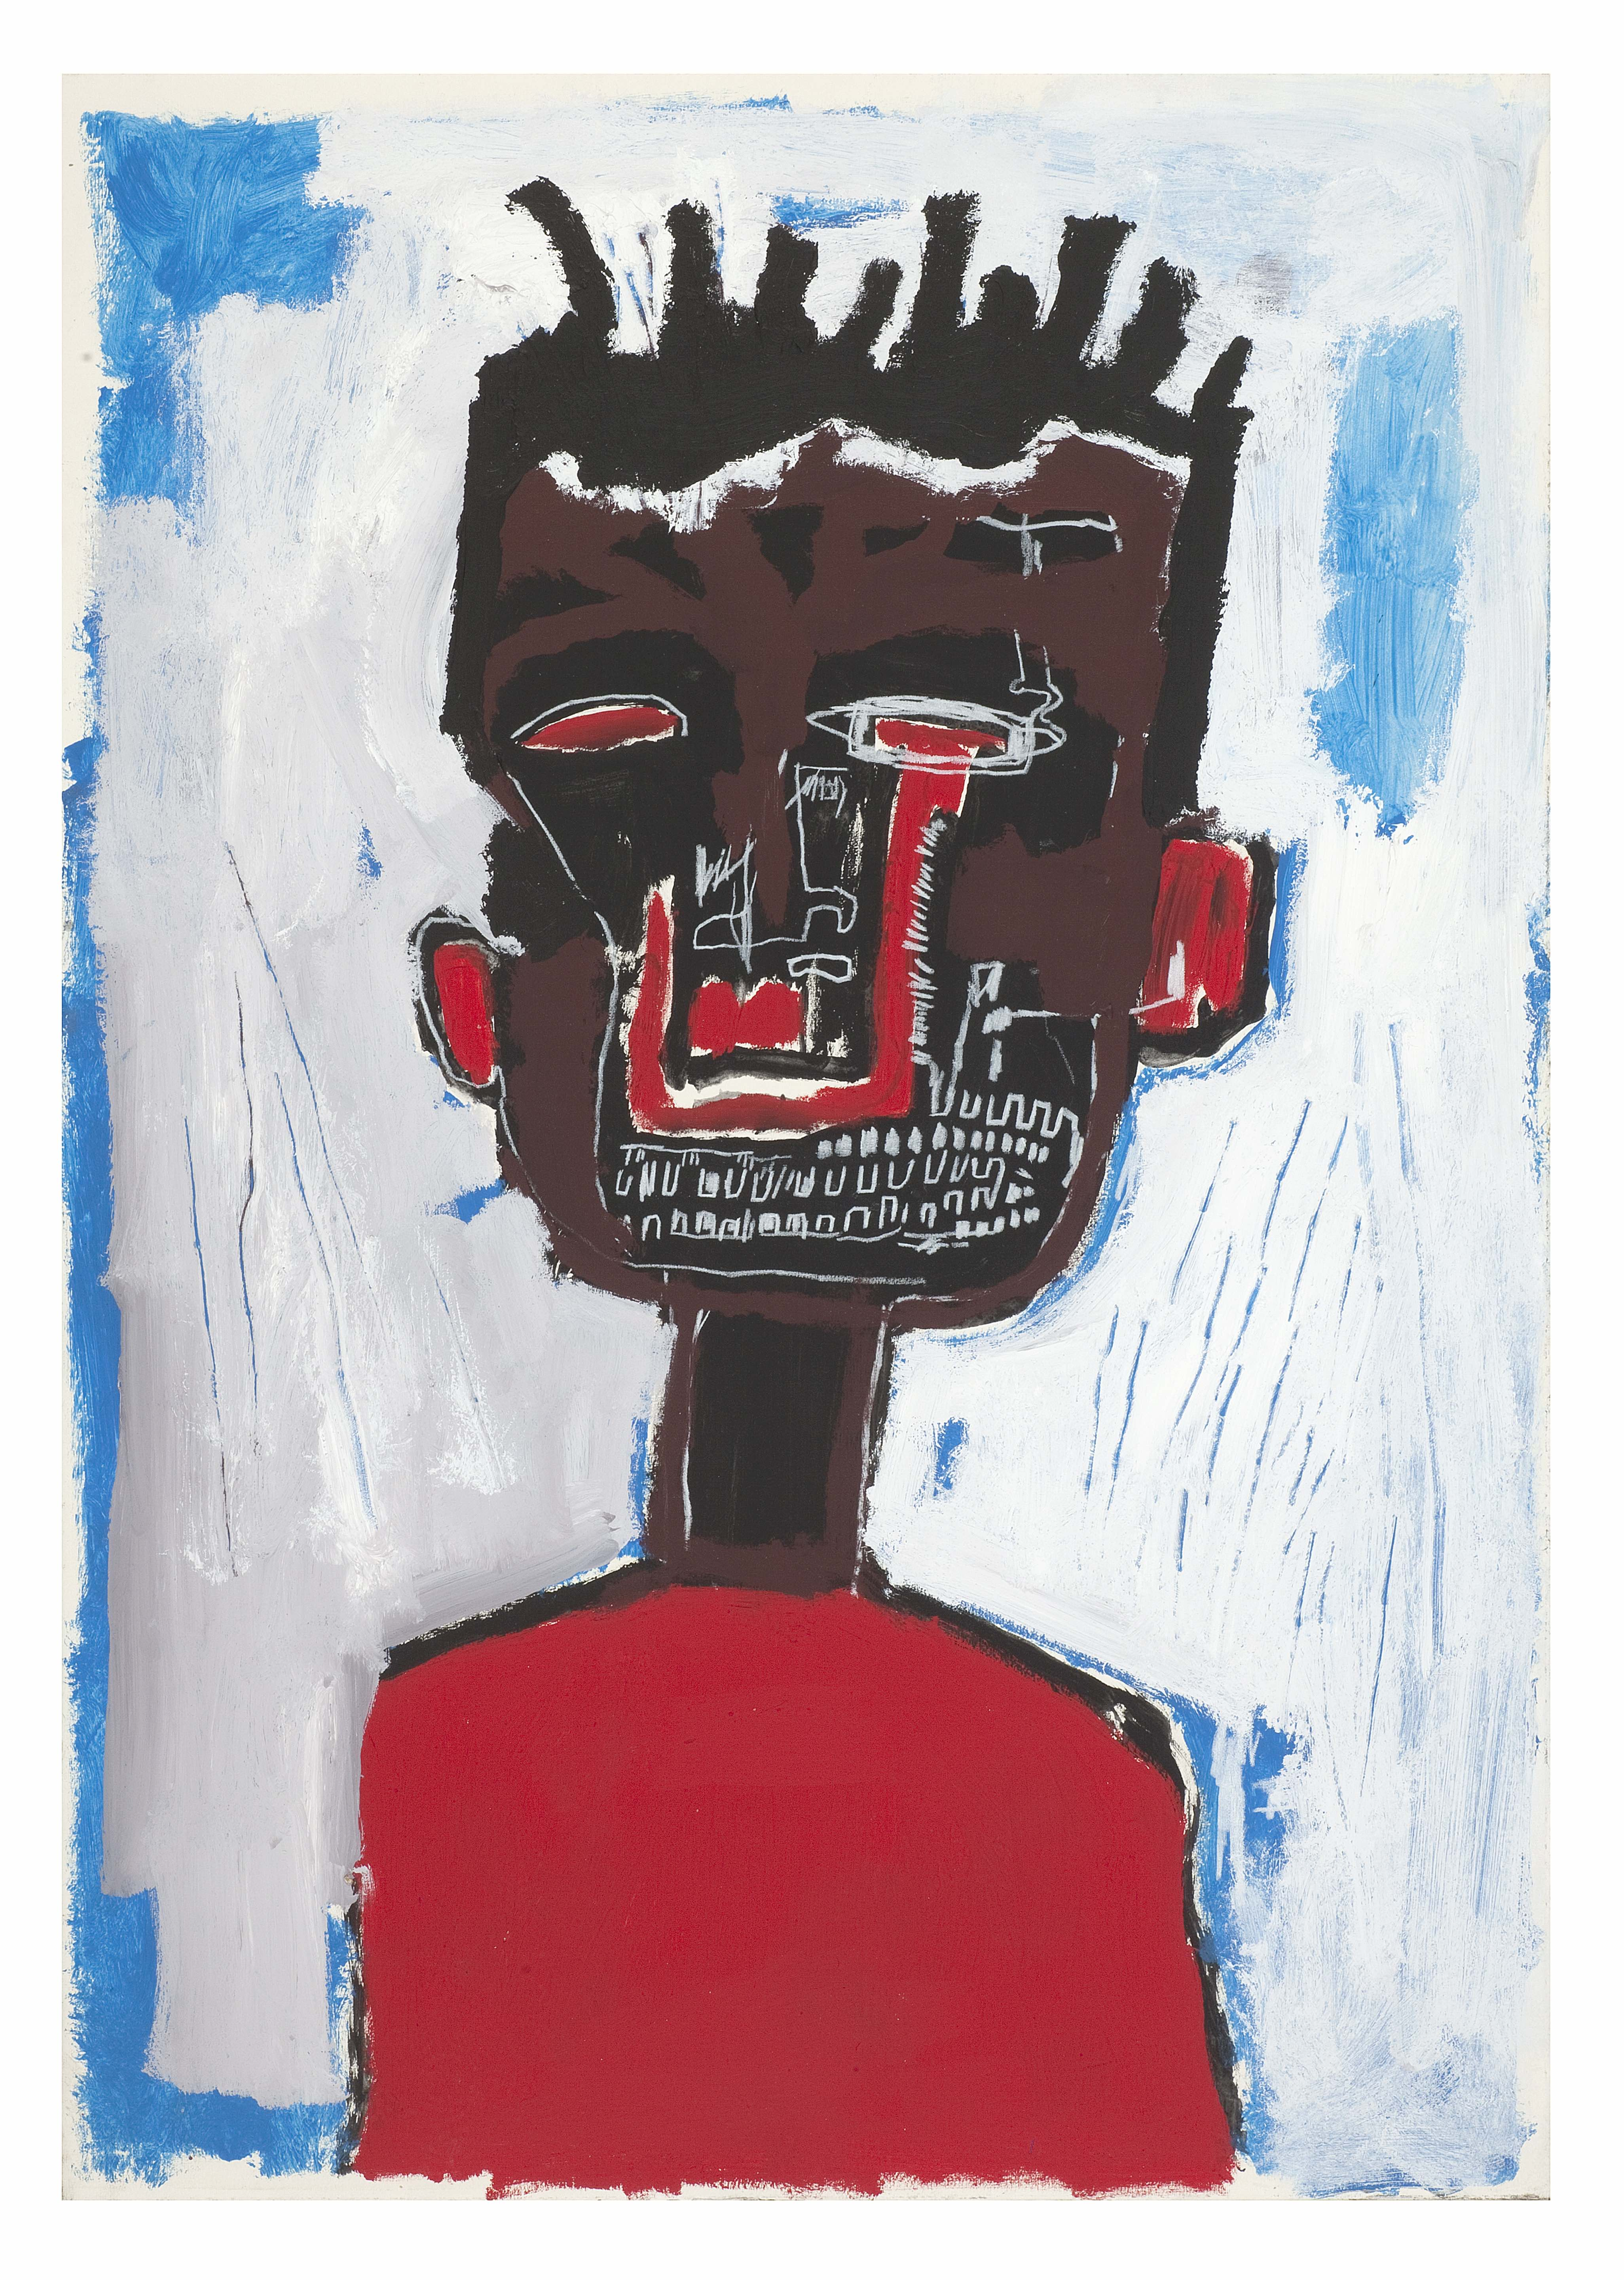 Jean-Michel Basquiat Self Portrait, 1984 Private collection. © The Estate of Jean-Michel Basquiat. Licensed by Artestar, New York.